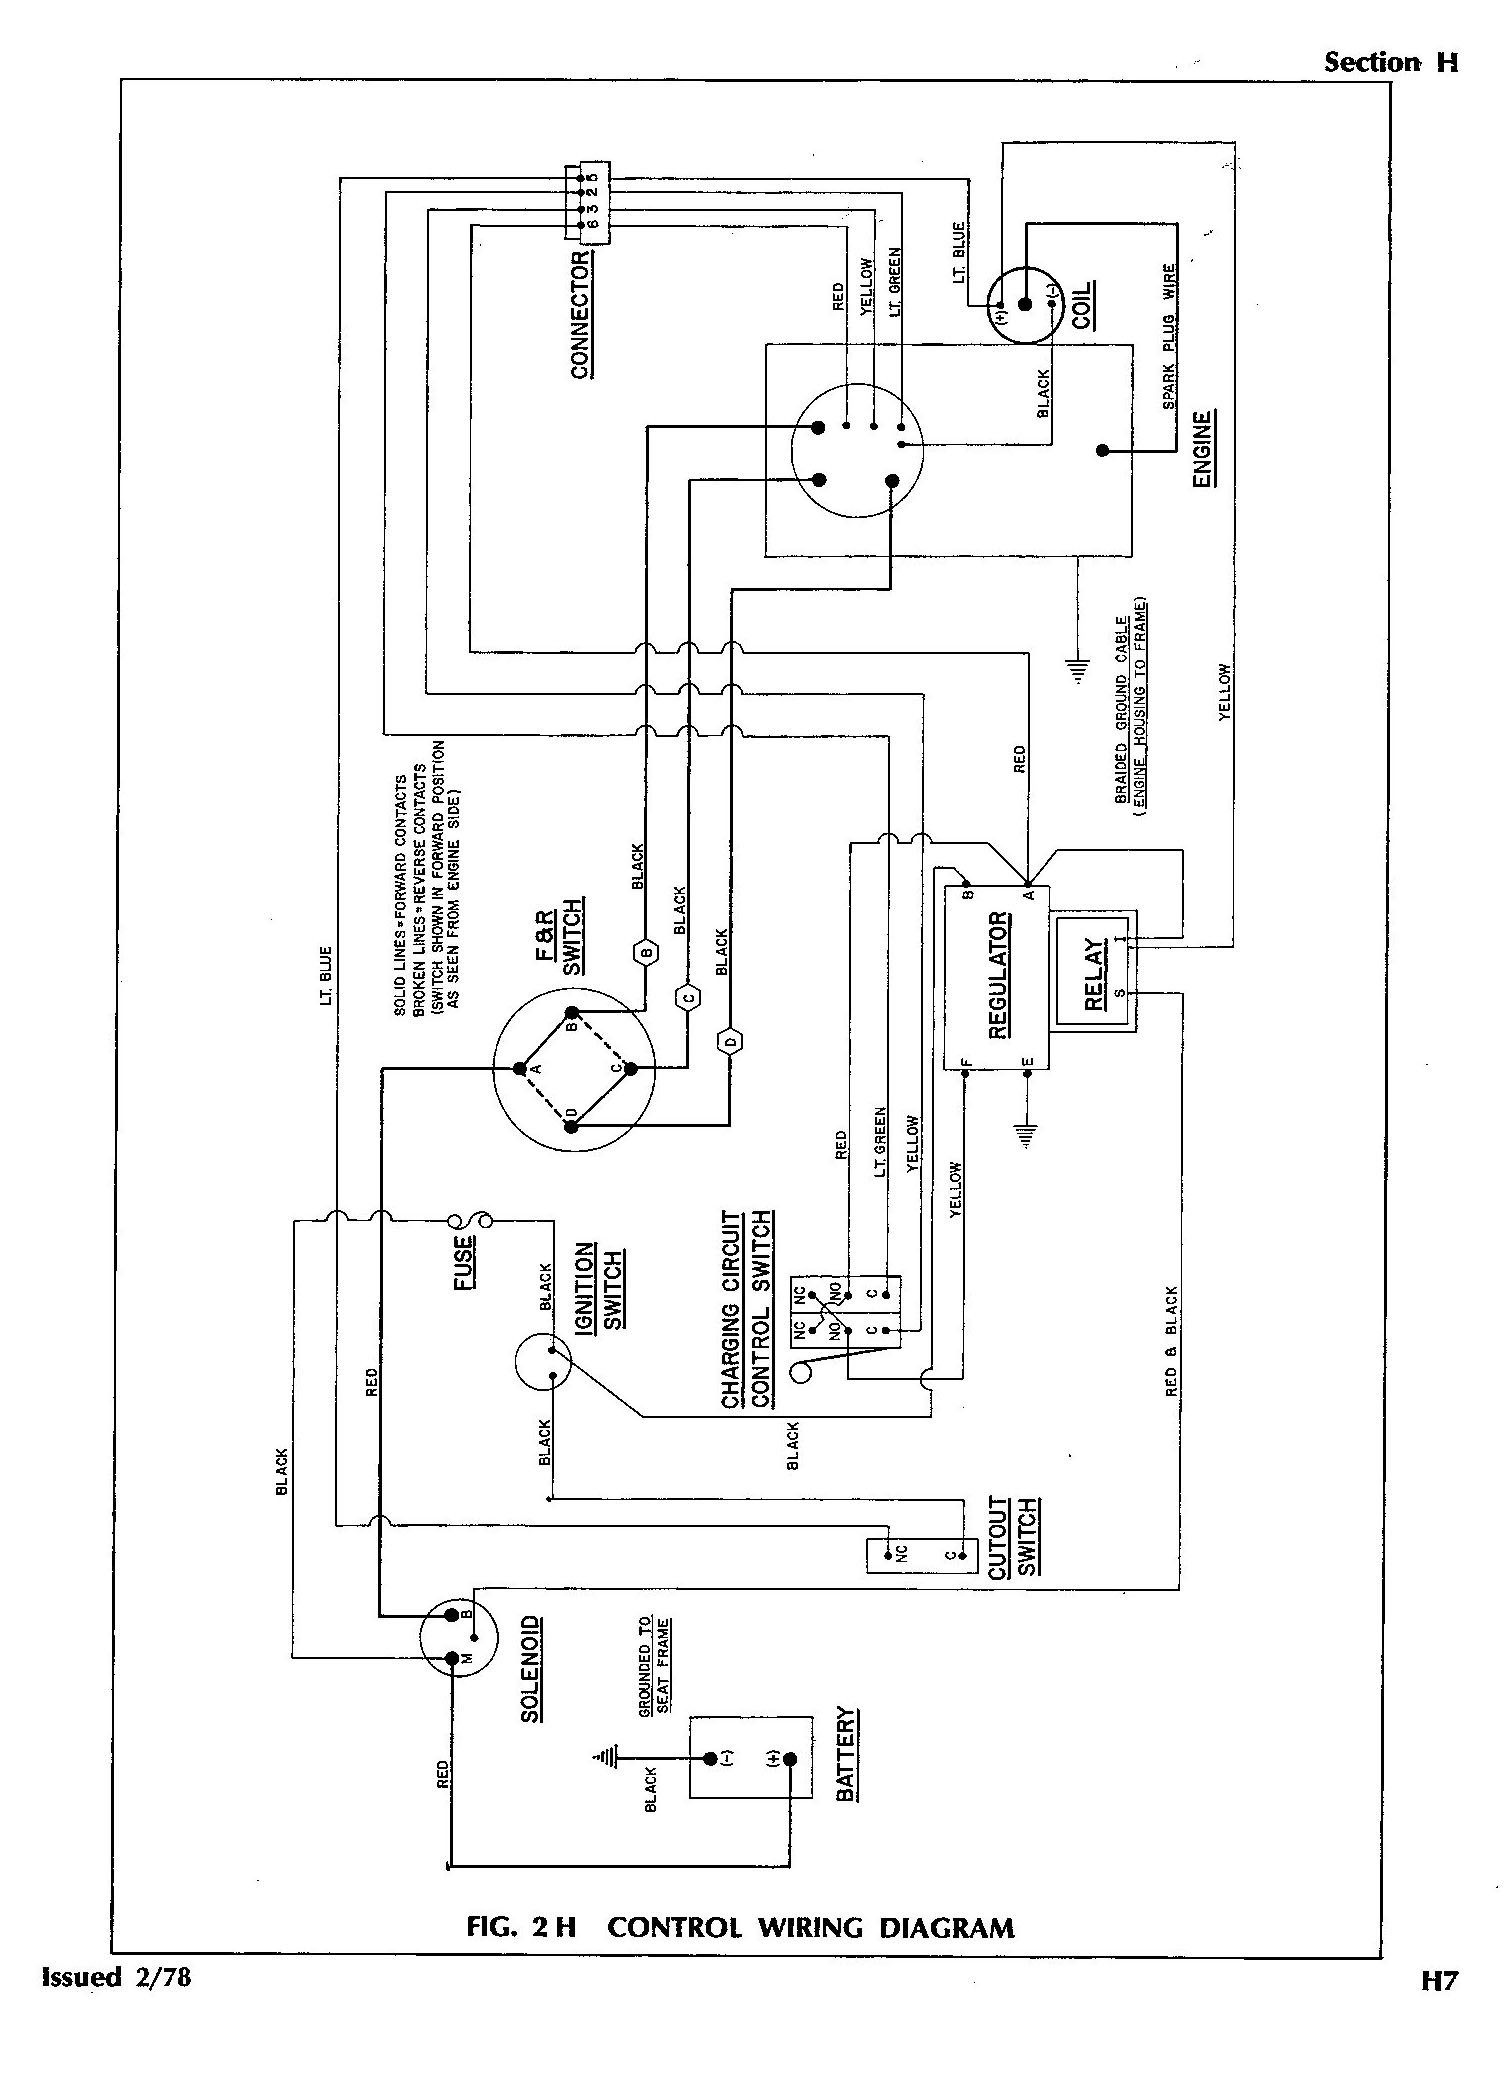 Club Car Engine Parts Diagram Starter Generator Wiring Diagram Golf Cart Reference Wiring Diagrams Of Club Car Engine Parts Diagram Pin by Jimmiejanet Testellamwfz On What Does An Engine with Turbo